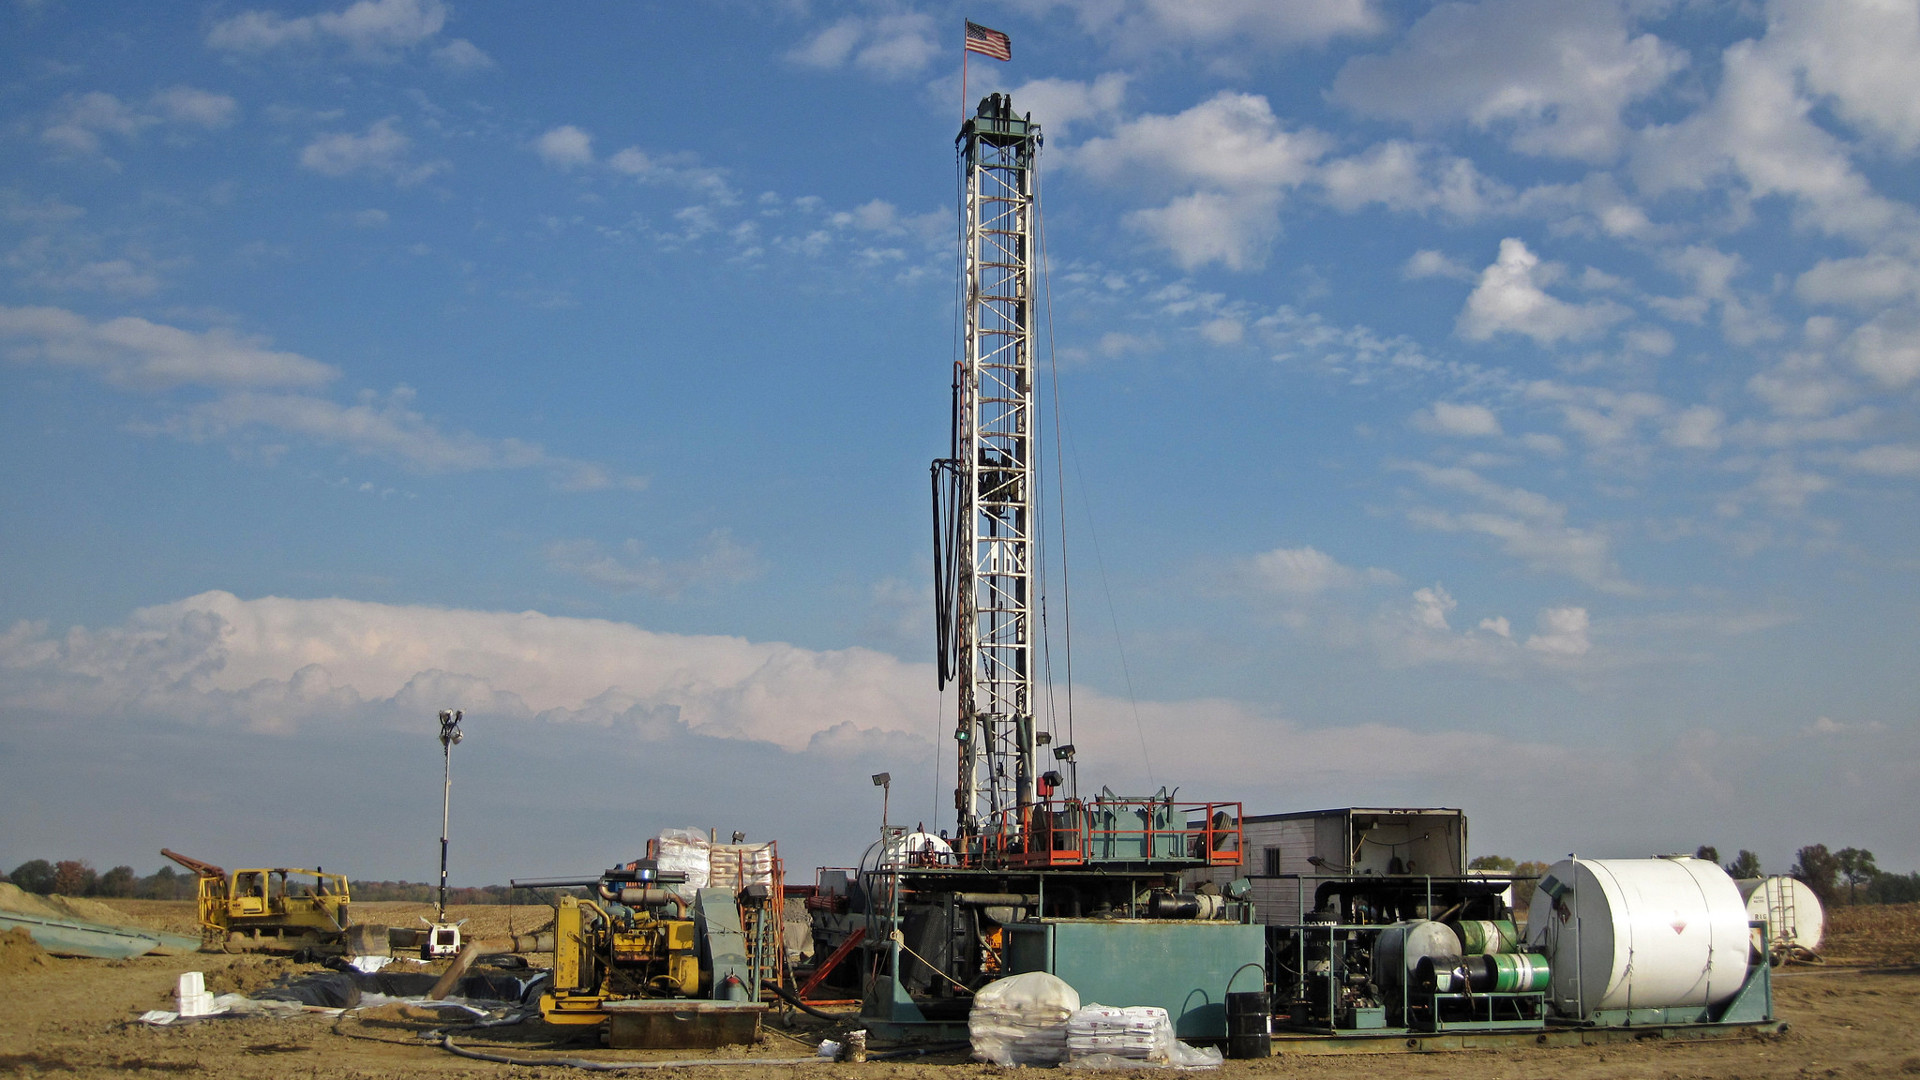 Drill, Baby, Drill: The U S  Added 38 Percent More Oil and